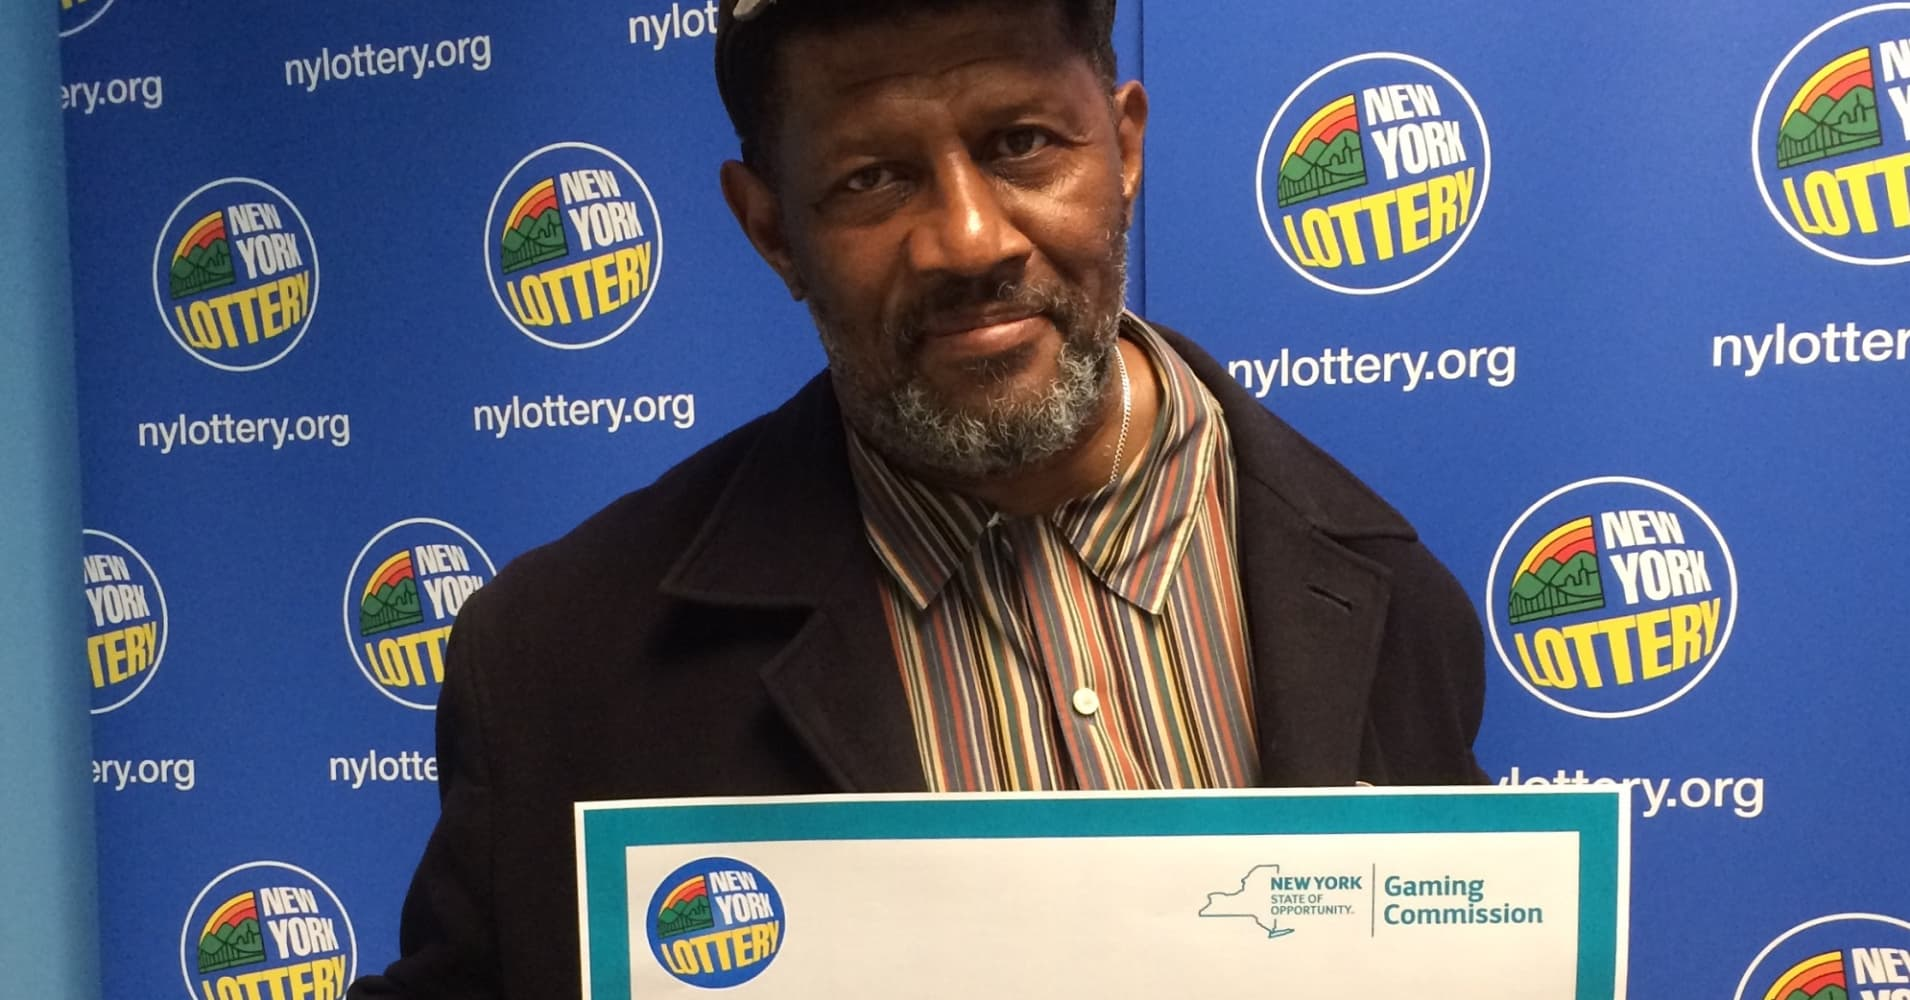 Grandfather finds old lottery ticket worth $24000000 in shirt pocket